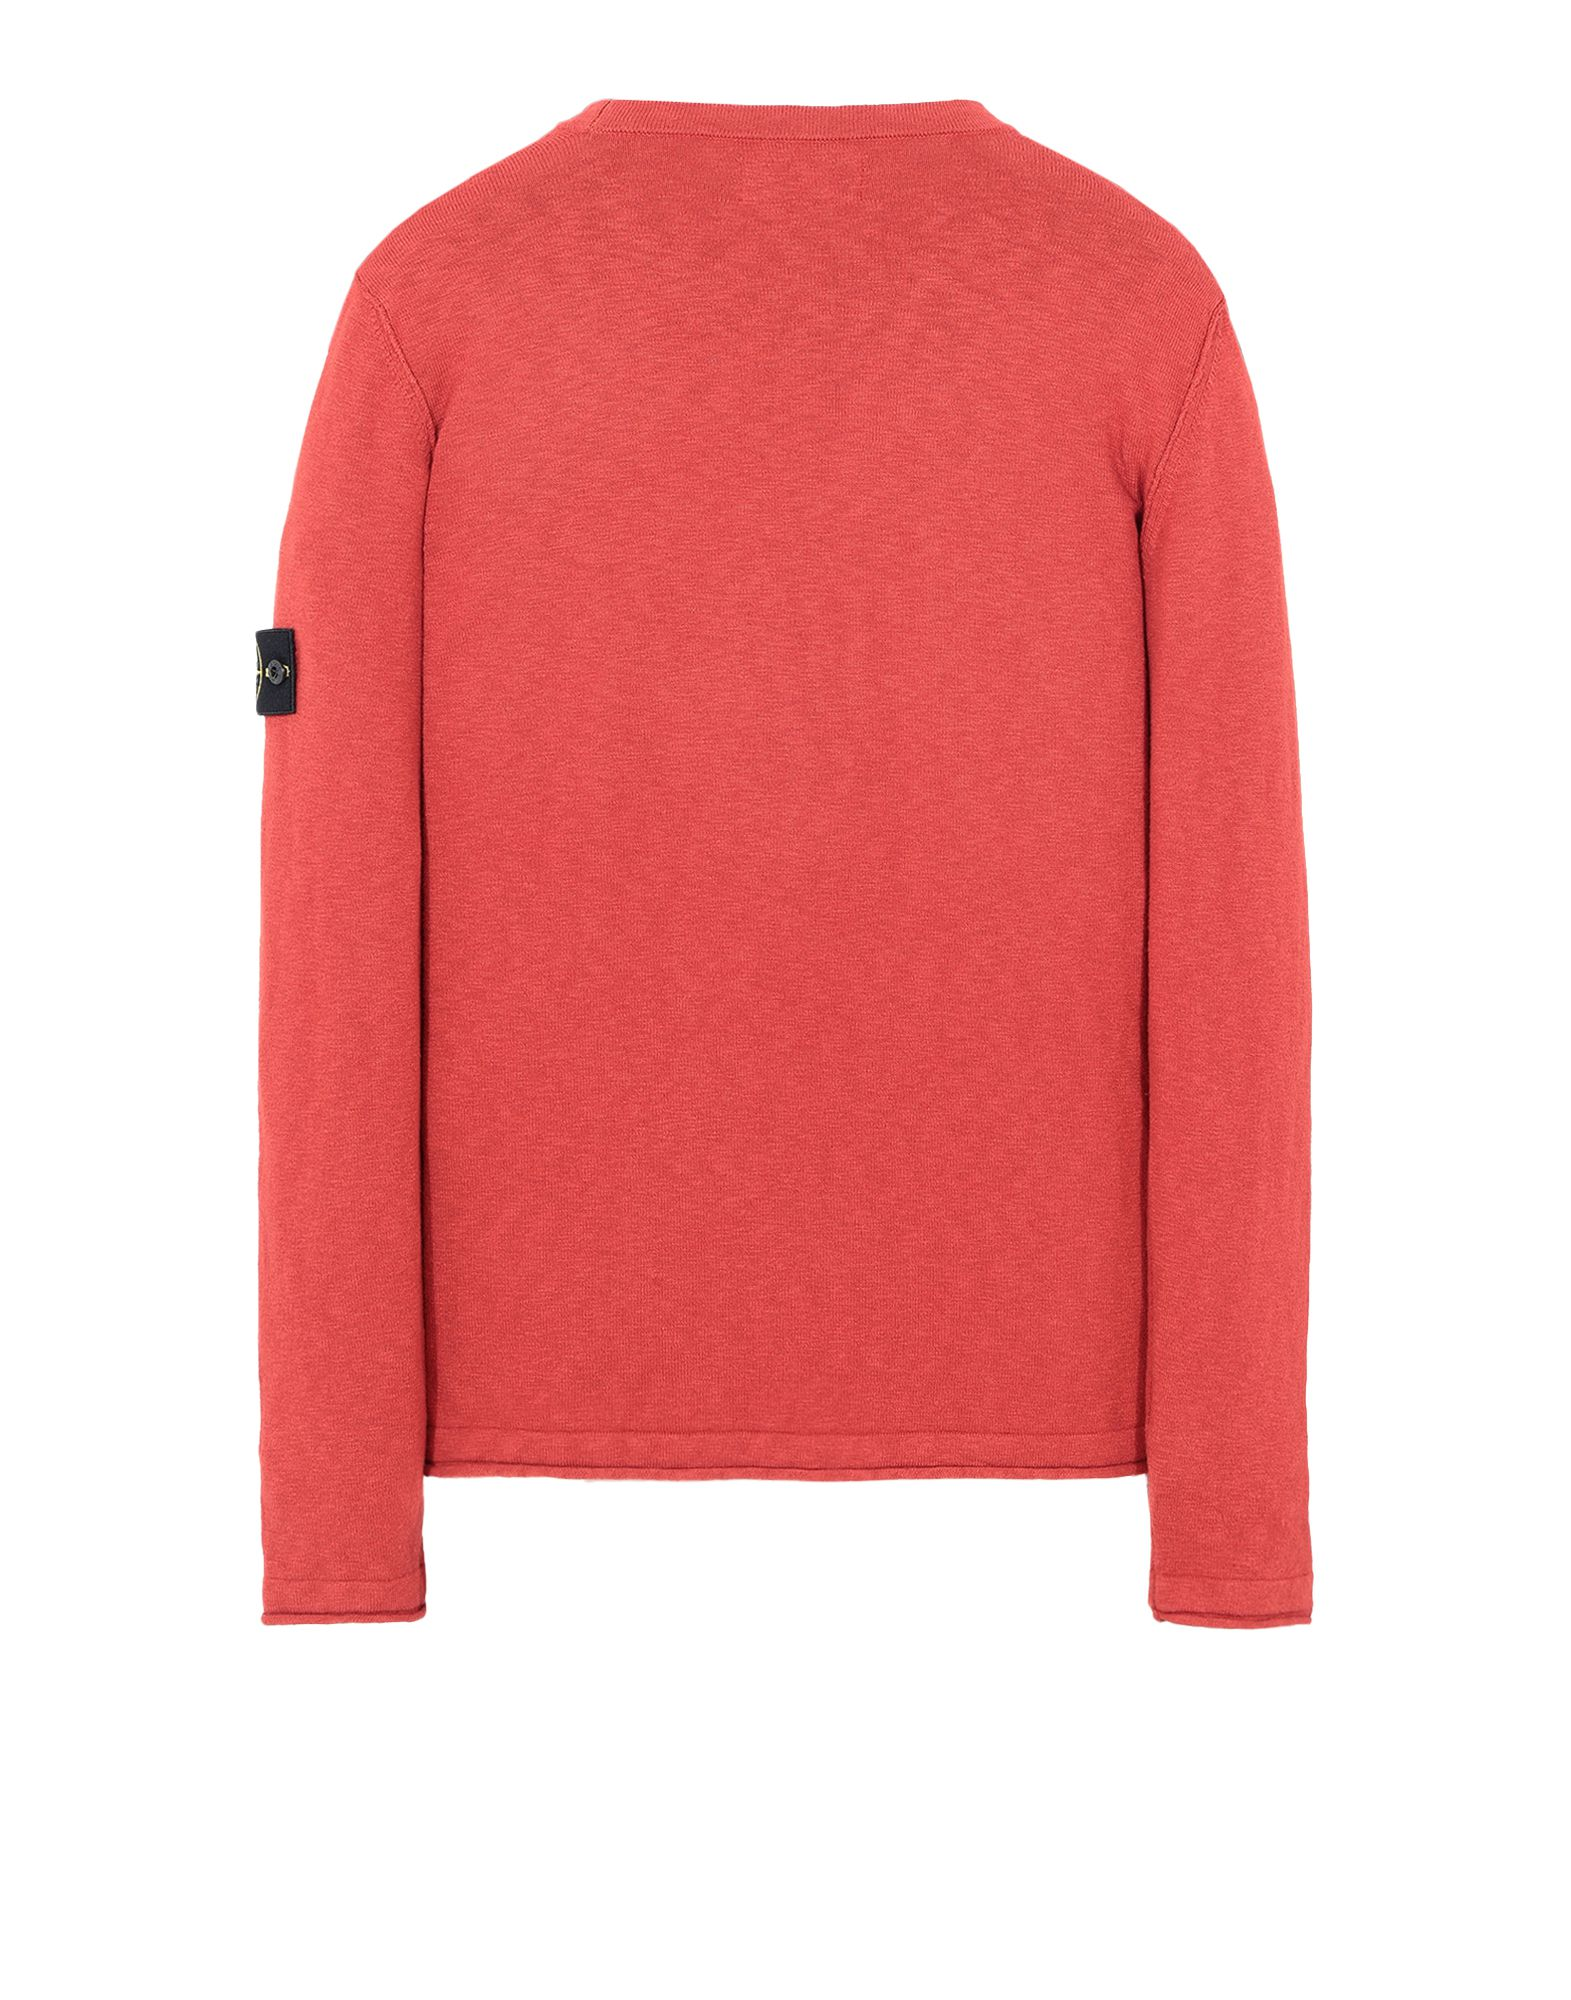 09d71a684c042e Preview  Stone Island Pullover · Preview  Stone Island Pullover ...